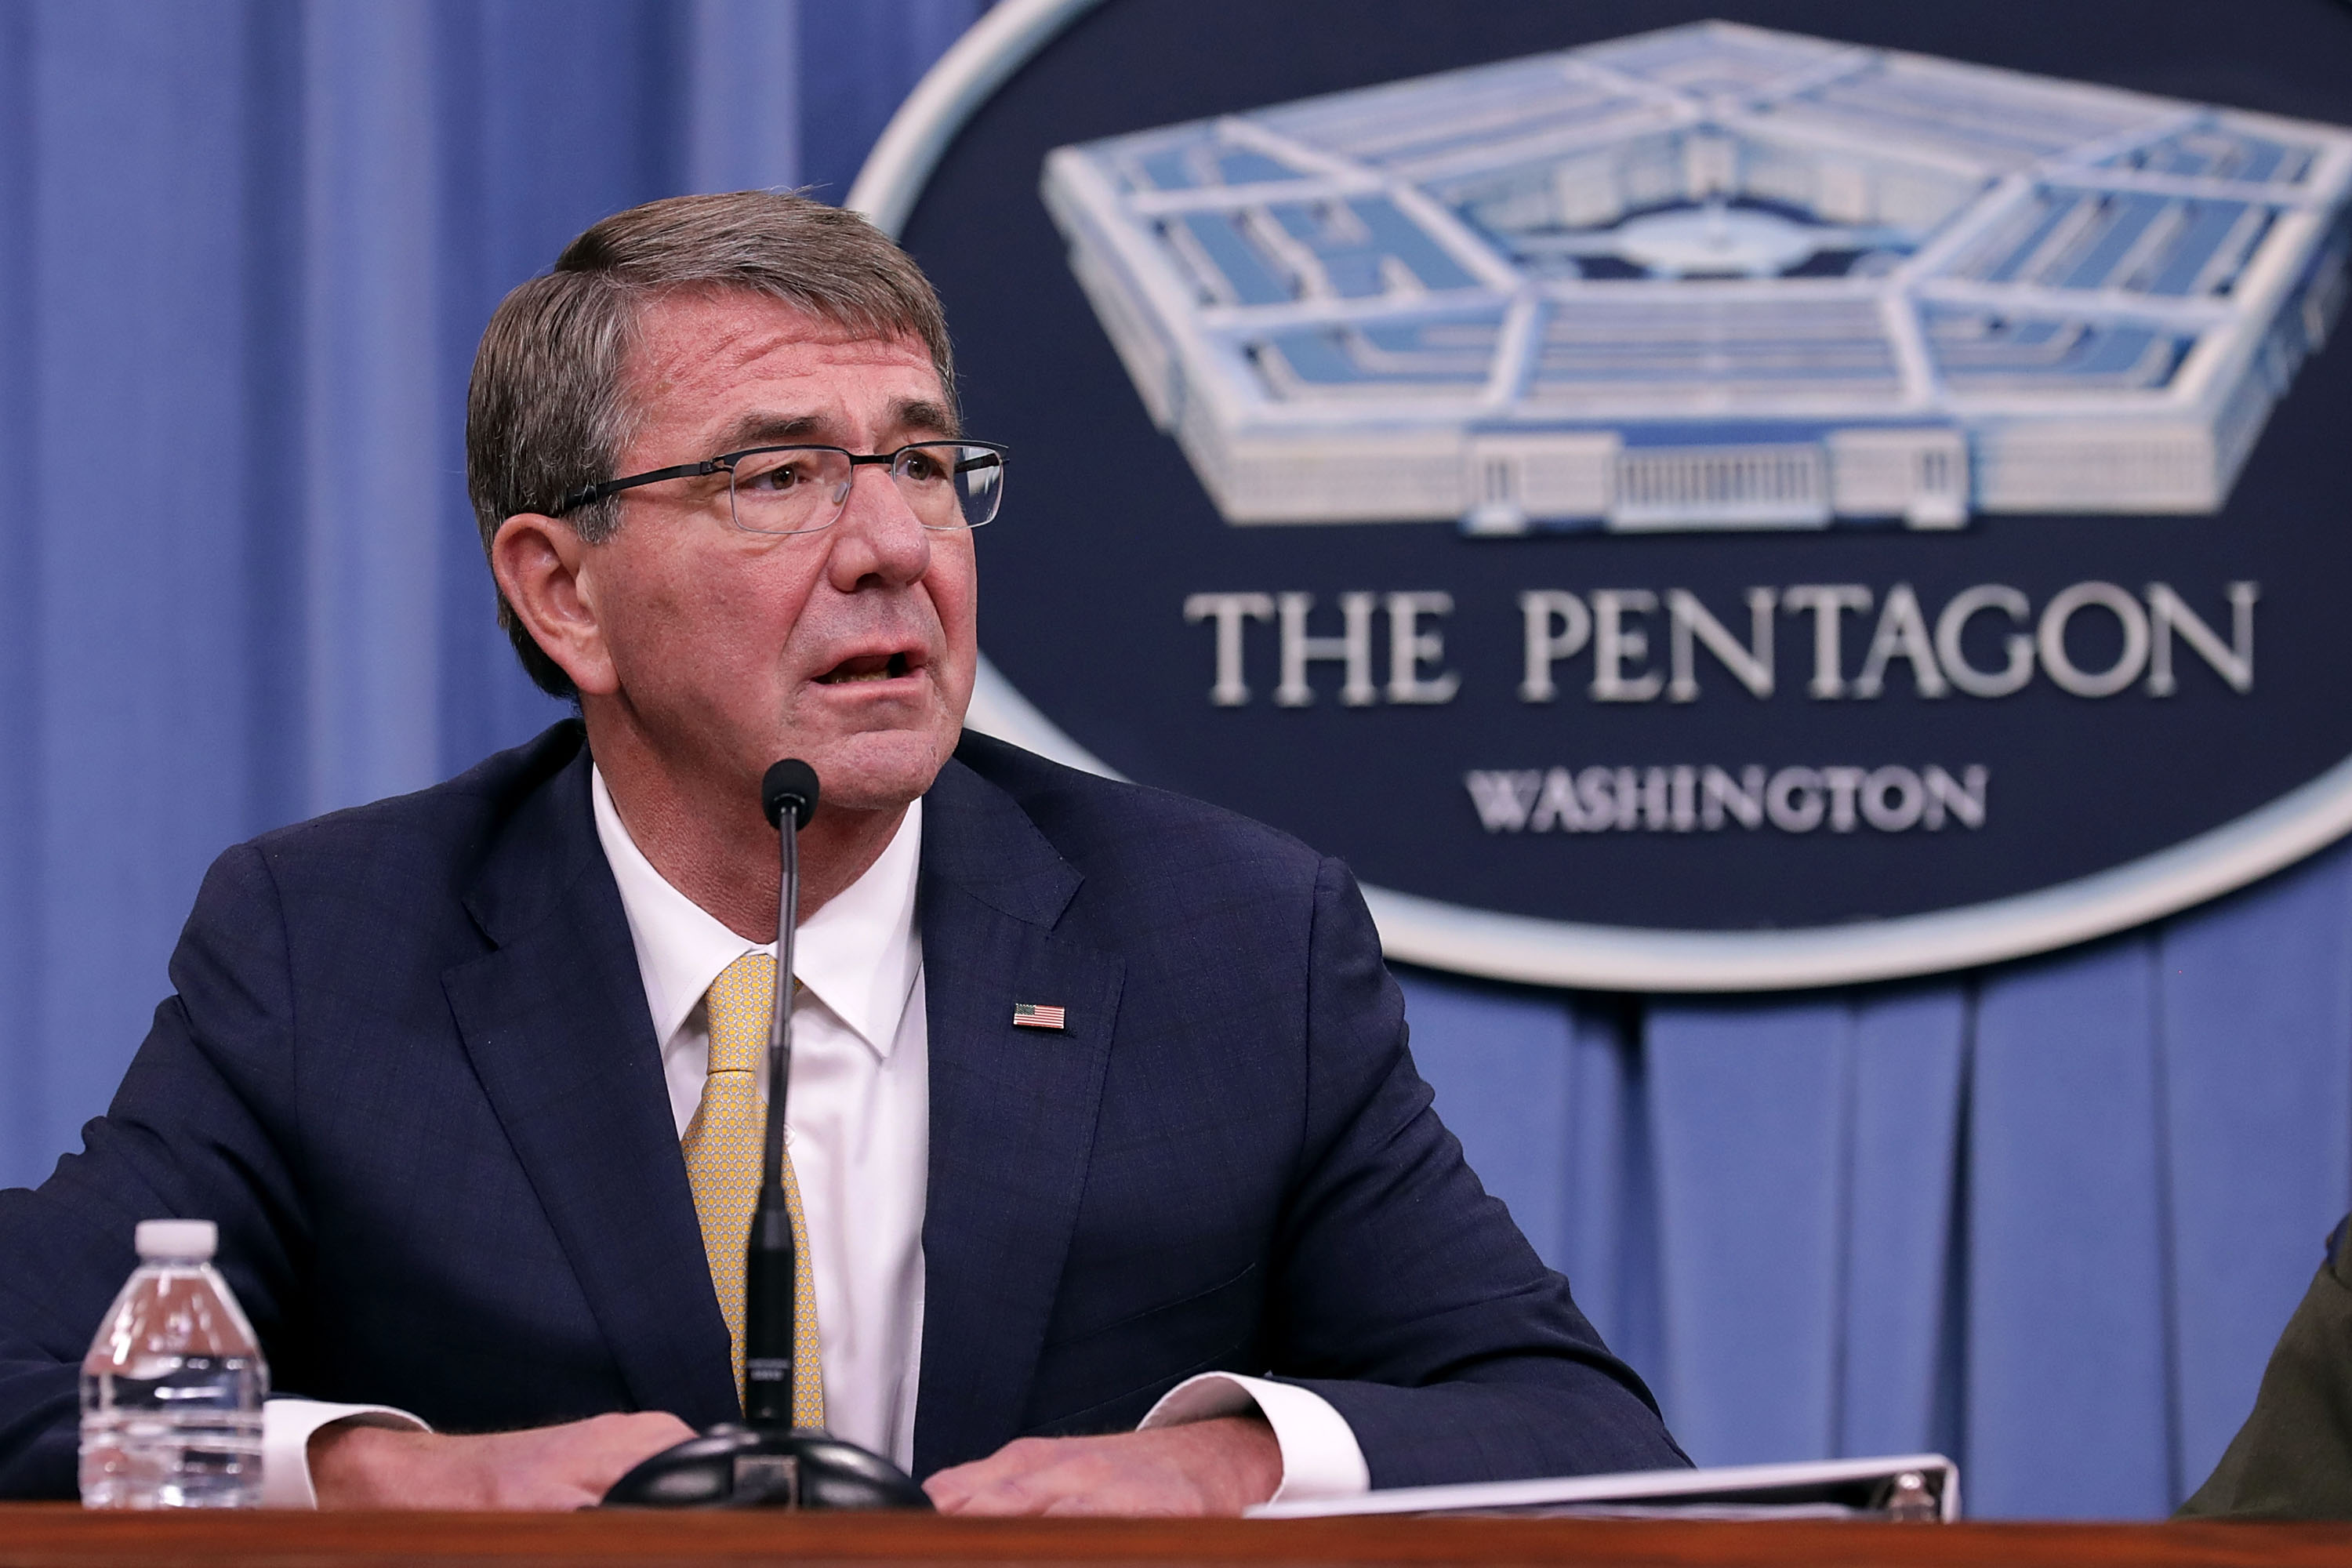 """Former Defense Secretary Ash Carter seated in front of a sign with a picture of the Pentagon building and the words """"The Pentagon, Washington."""""""